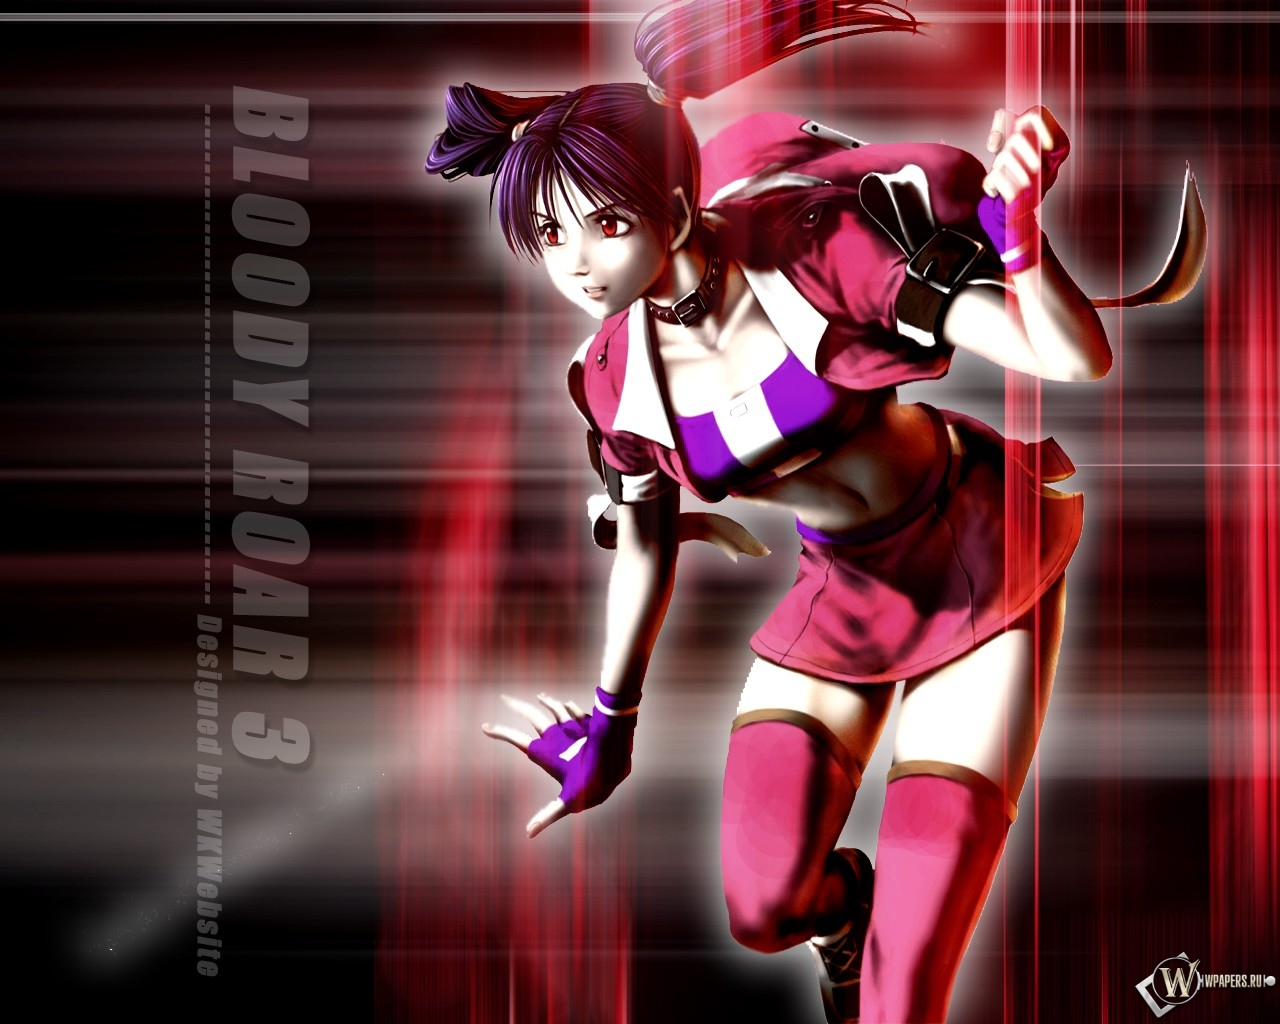 Bloody roar hentai game hentai pic